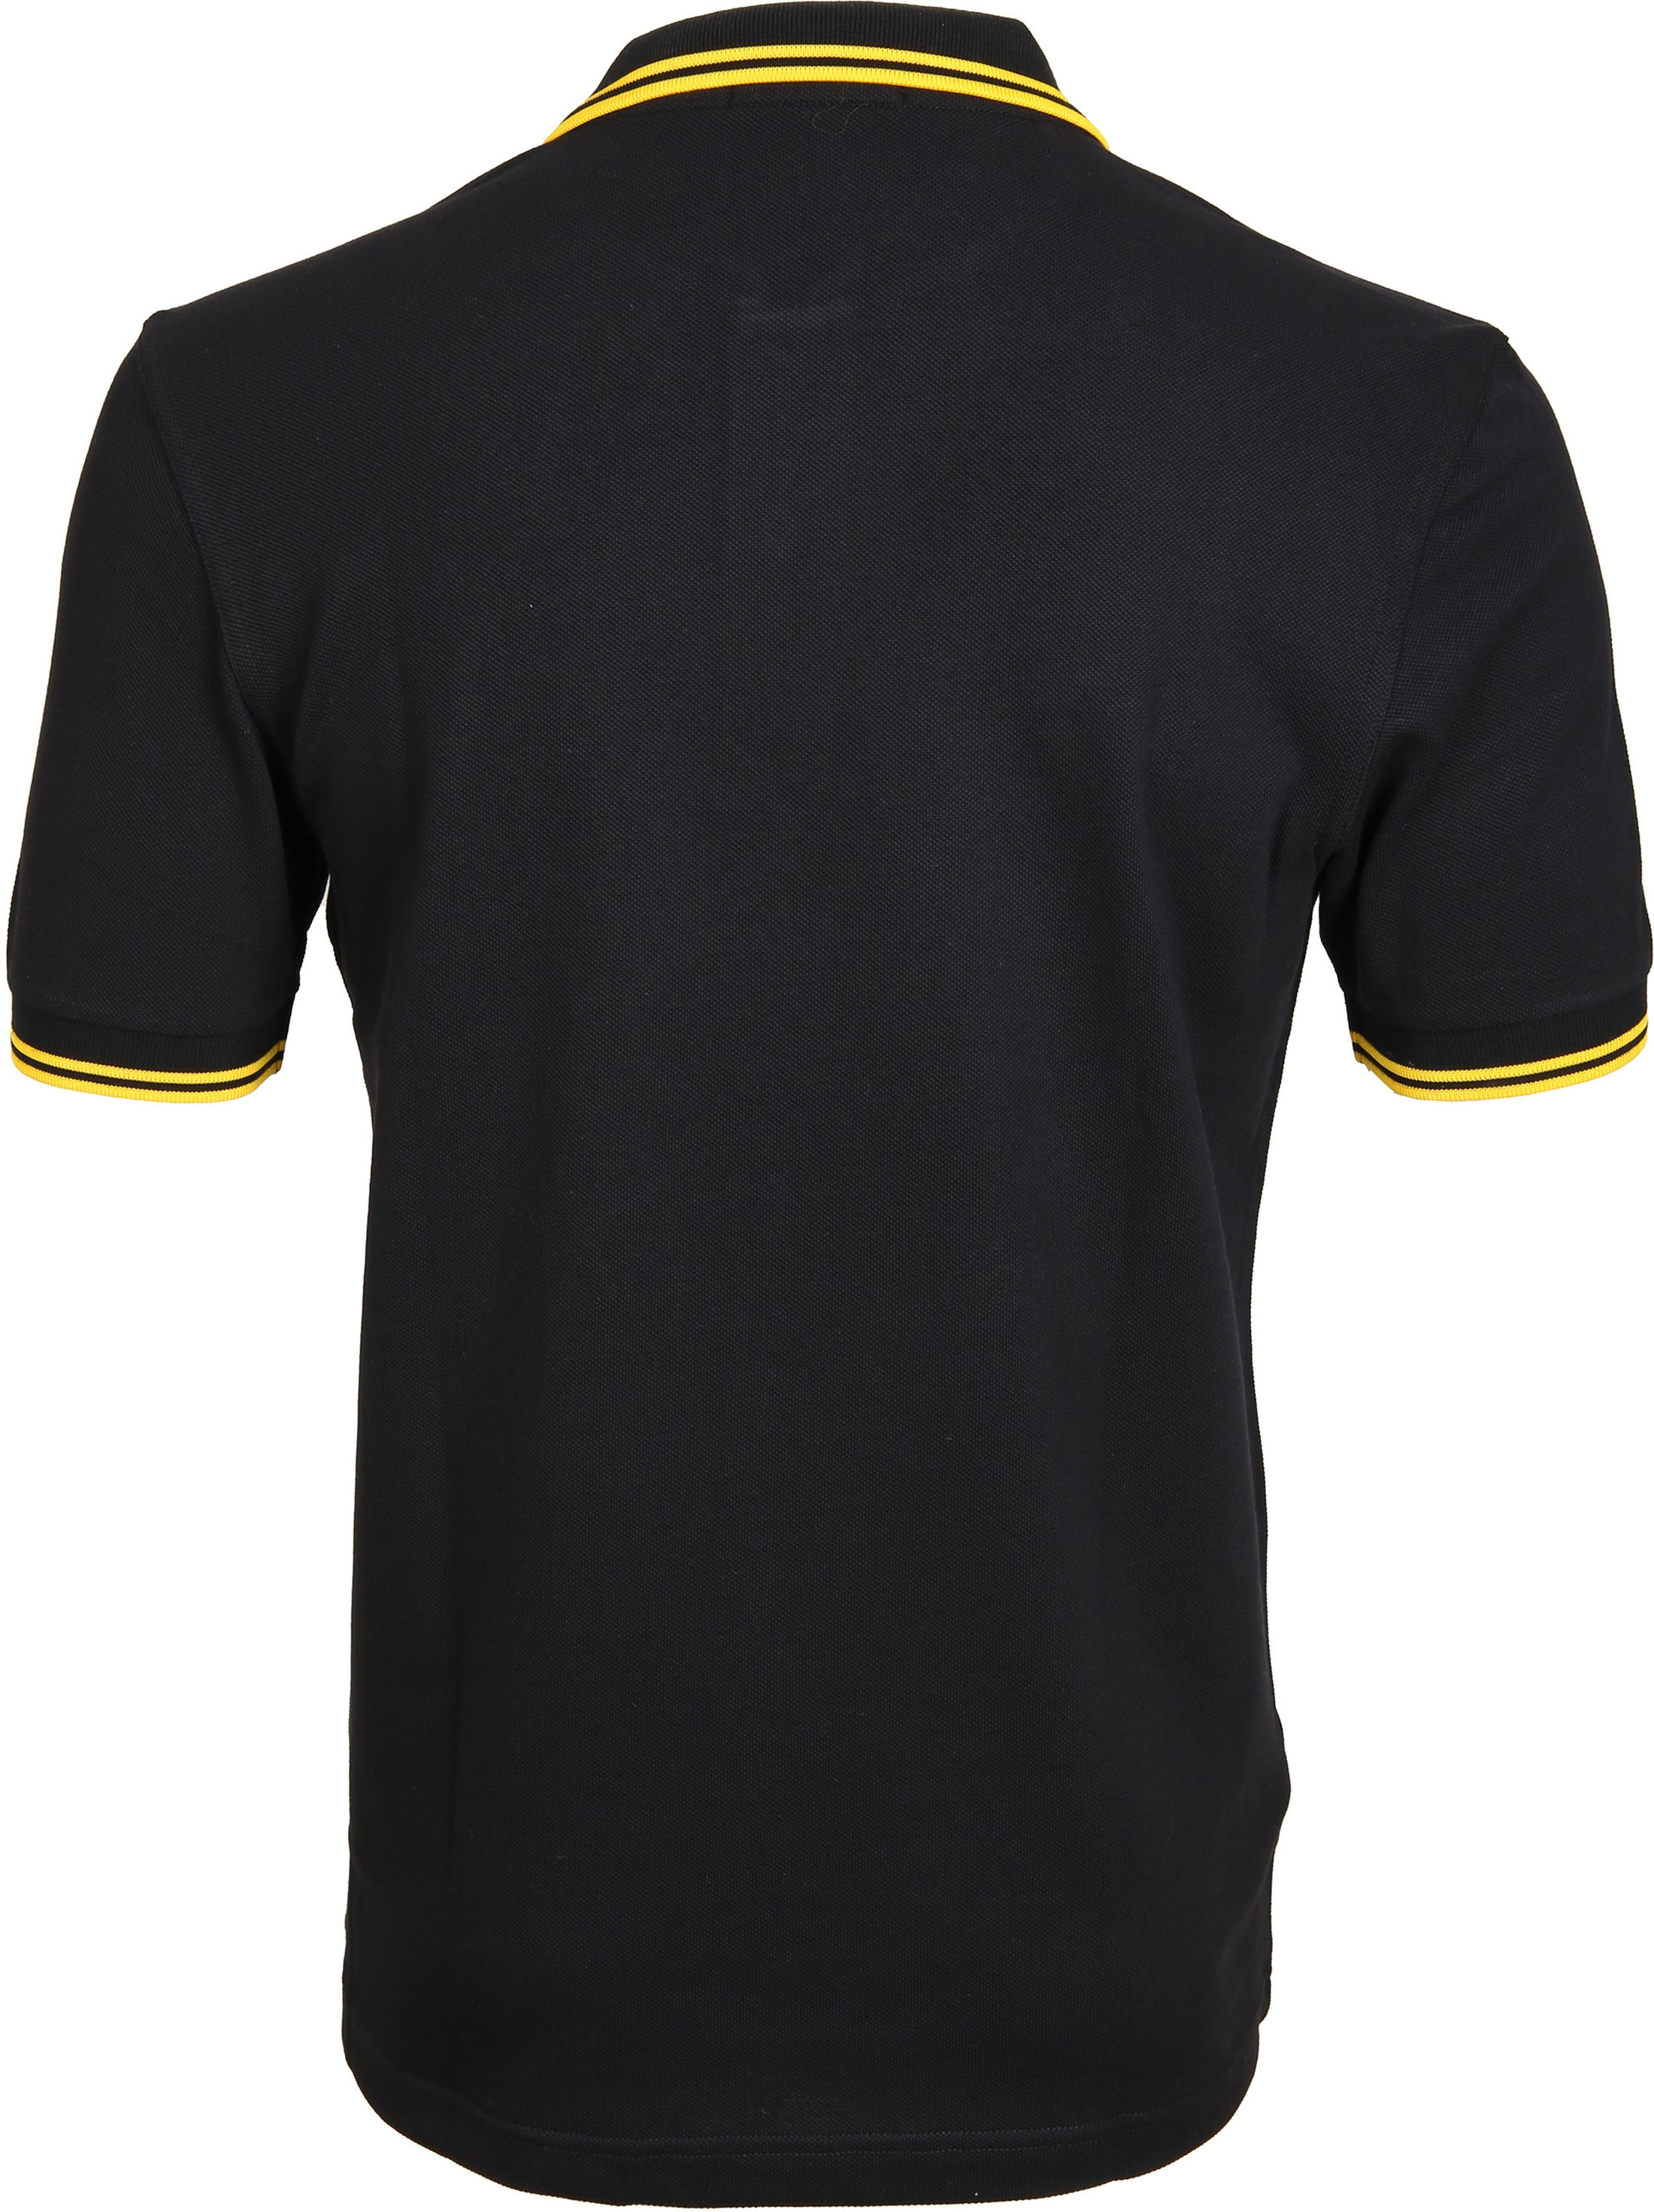 Fred Perry Polo Black Yellow Tip